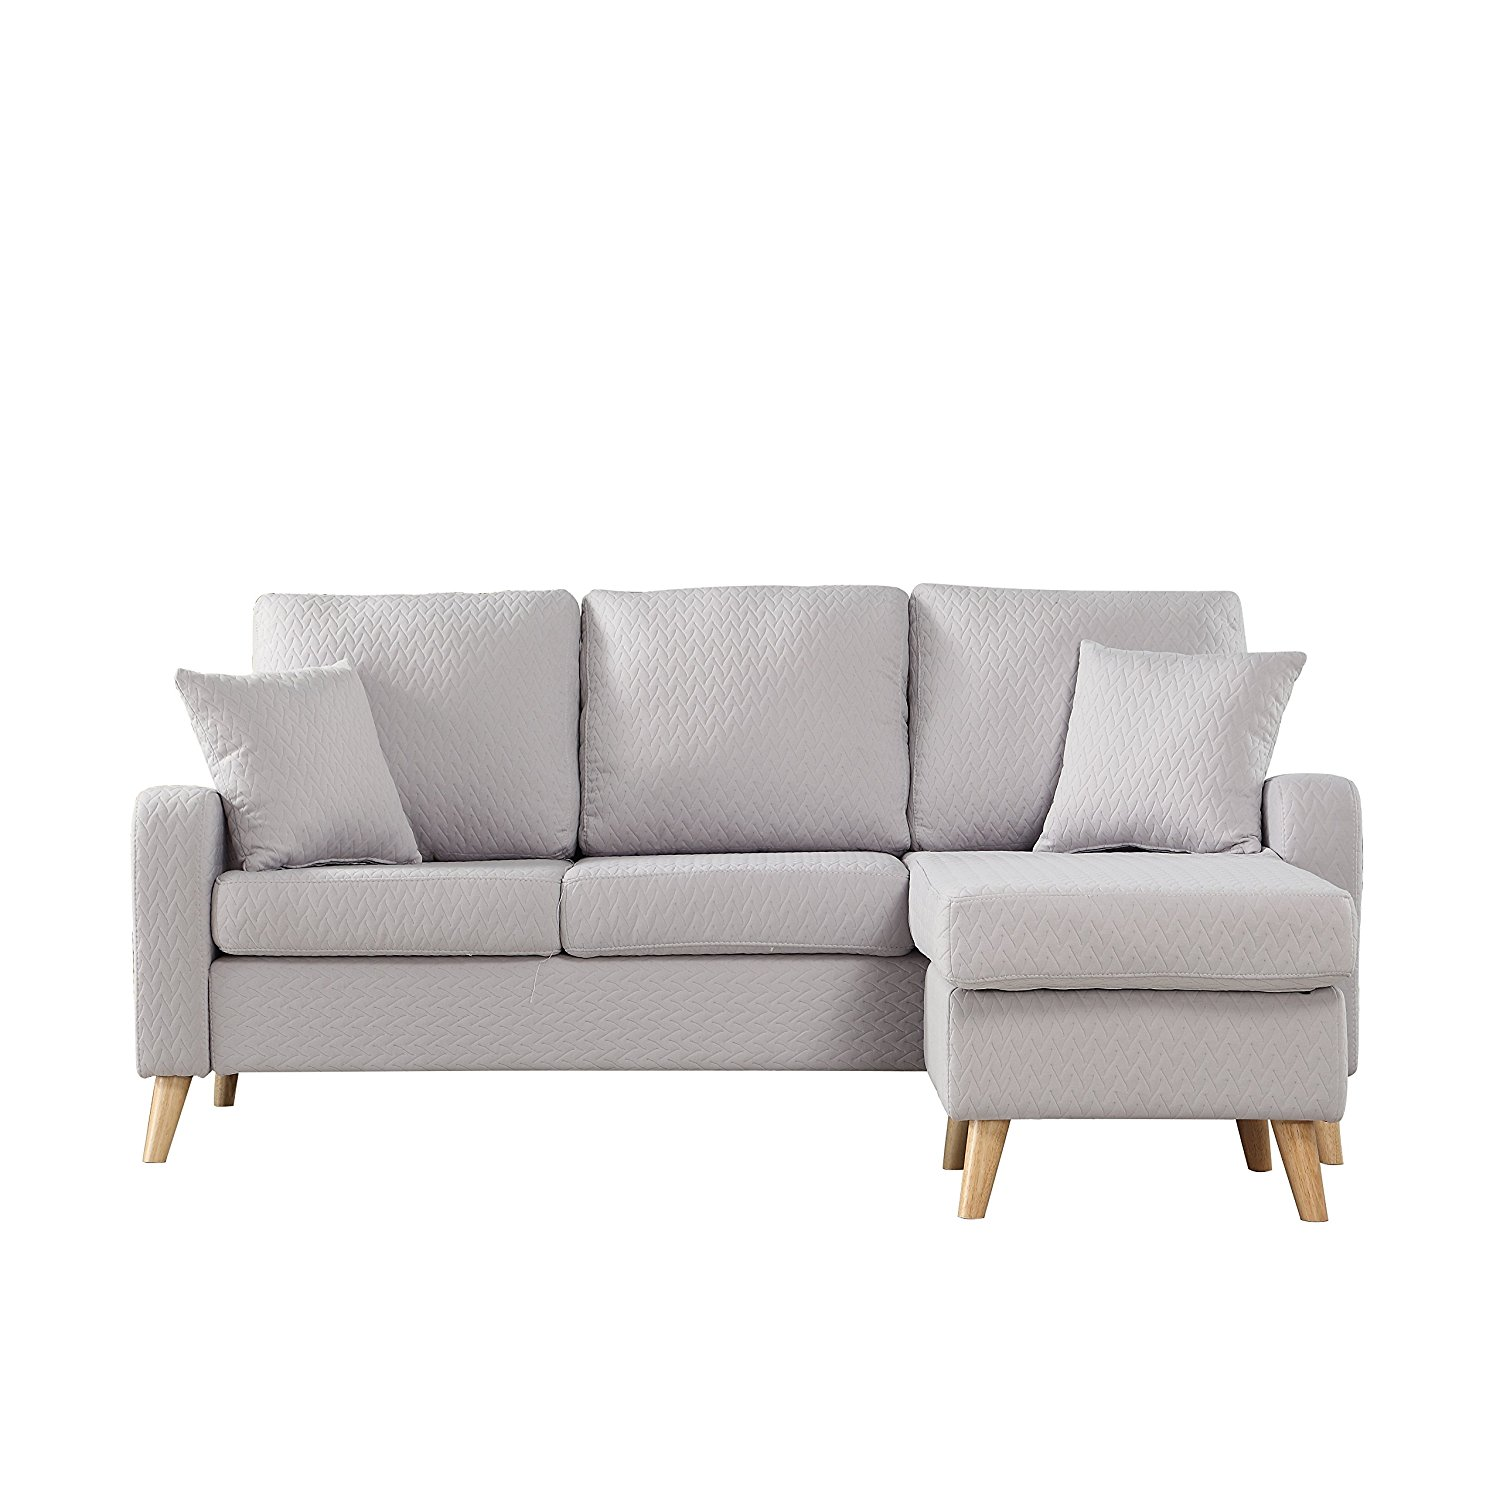 modern sofa colors fulton bed design sectional with reversible chaise 43 10